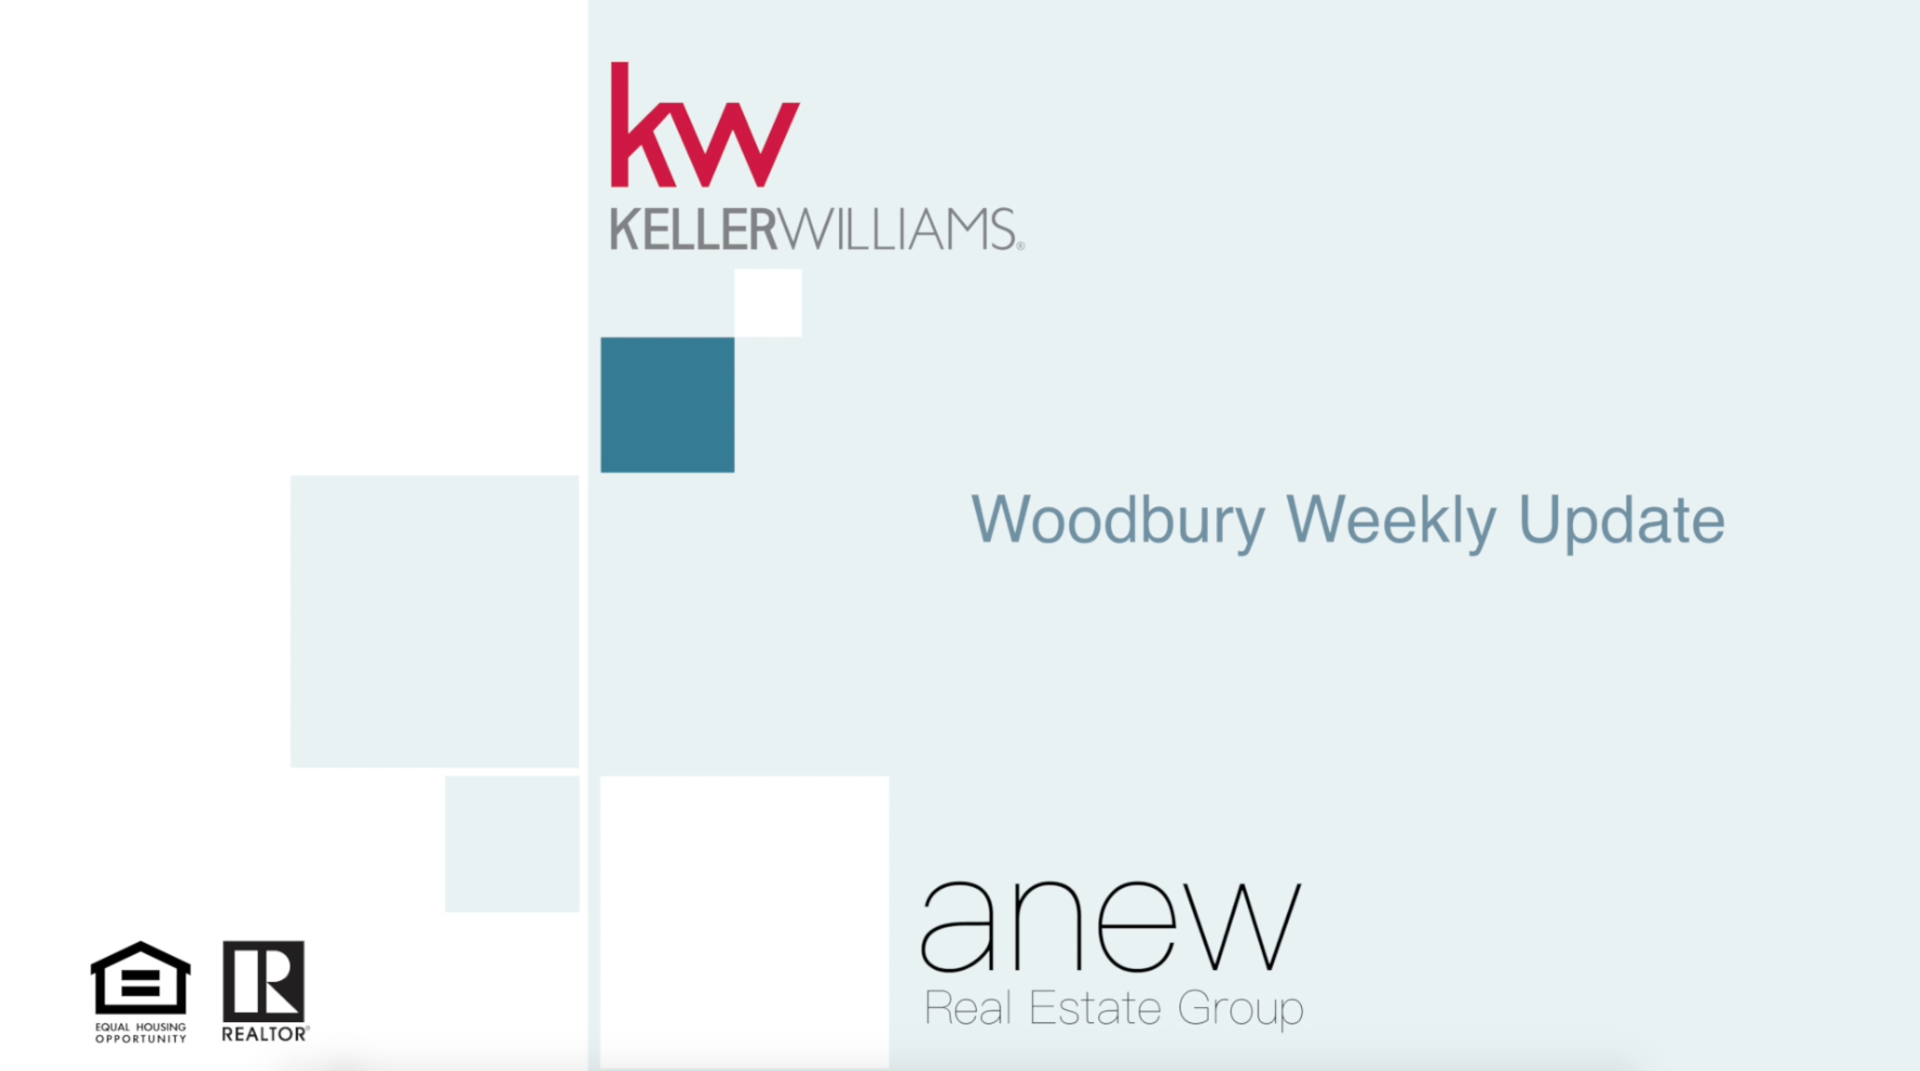 Woodbury Weekly Update for July 23rd, 2018